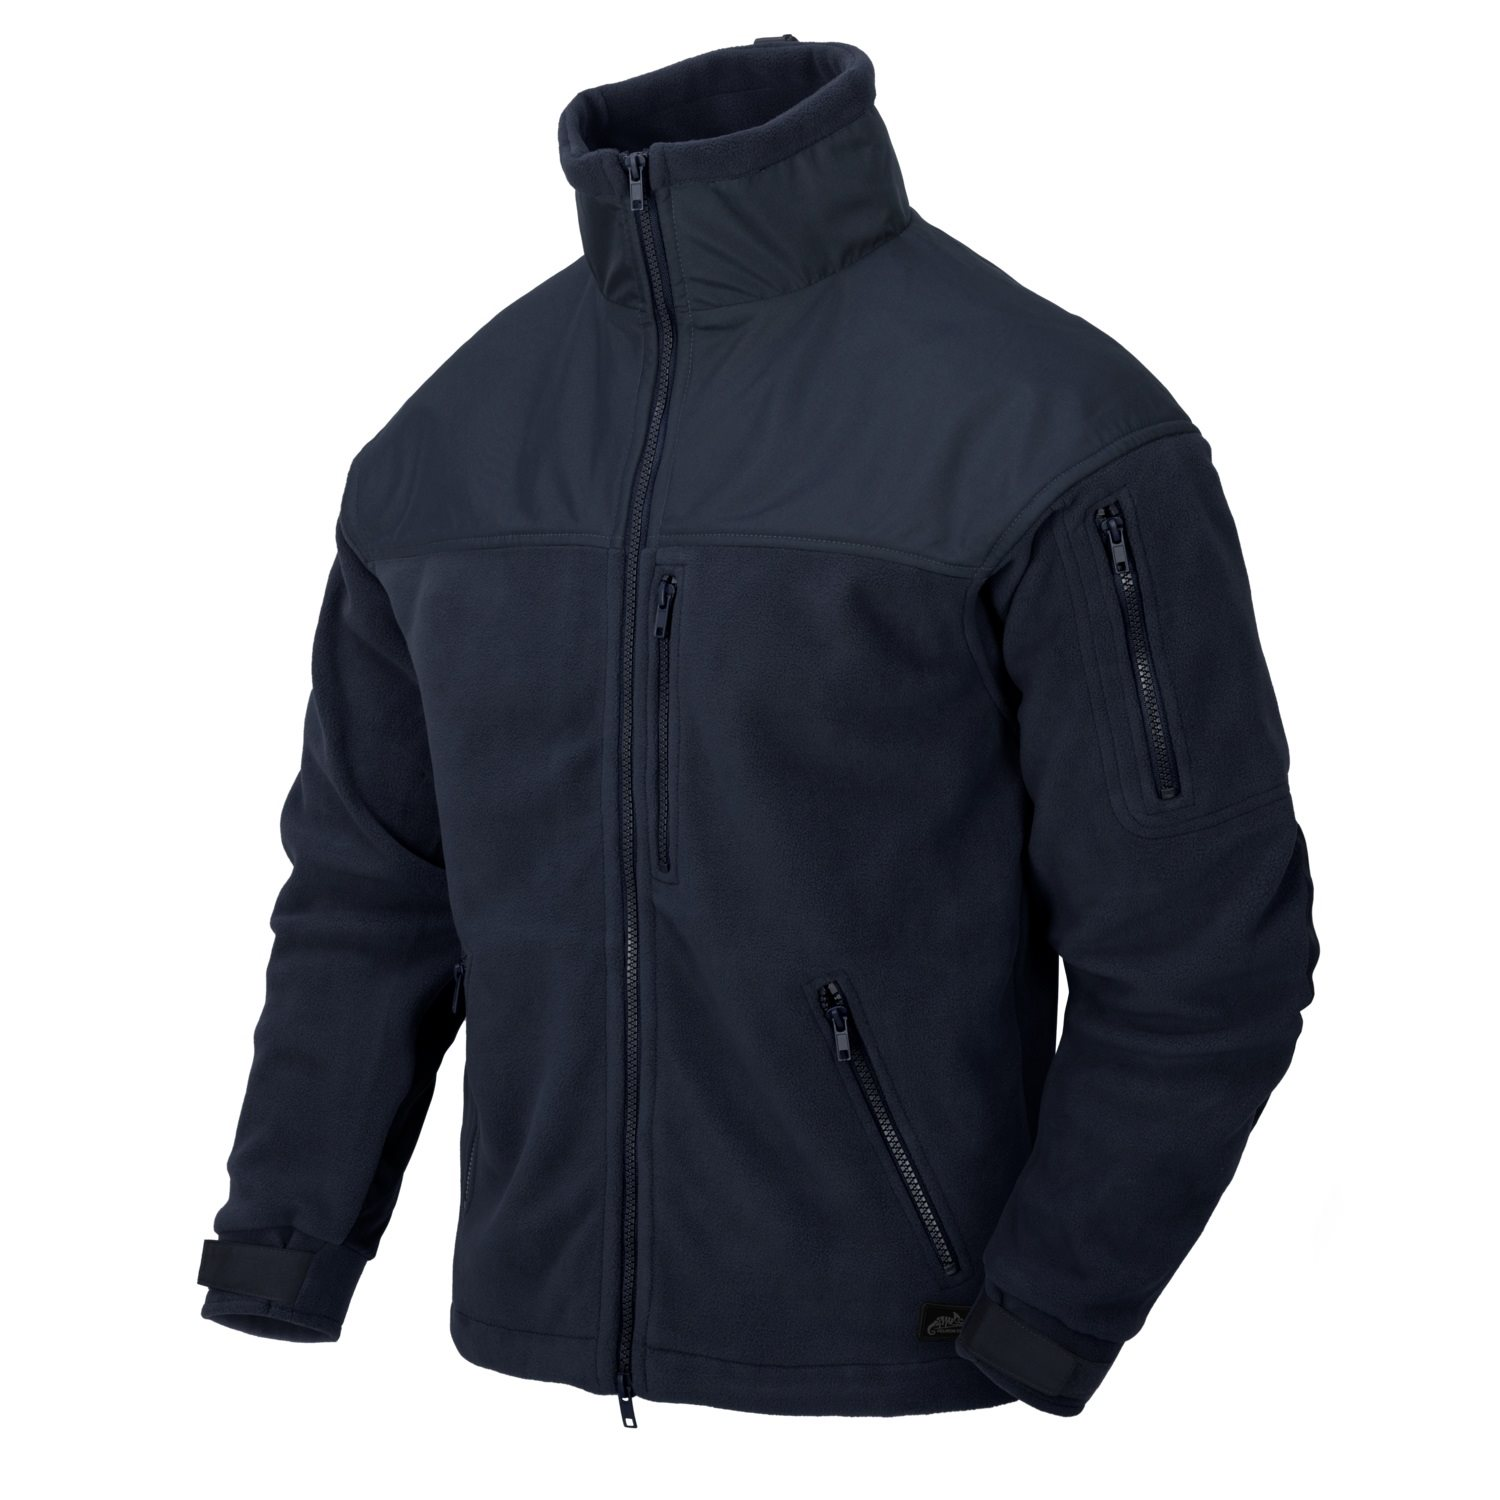 Bunda CLASSIC ARMY fleece NAVY BLUE Helikon-Tex® BL-CAF-FL-37 L-11